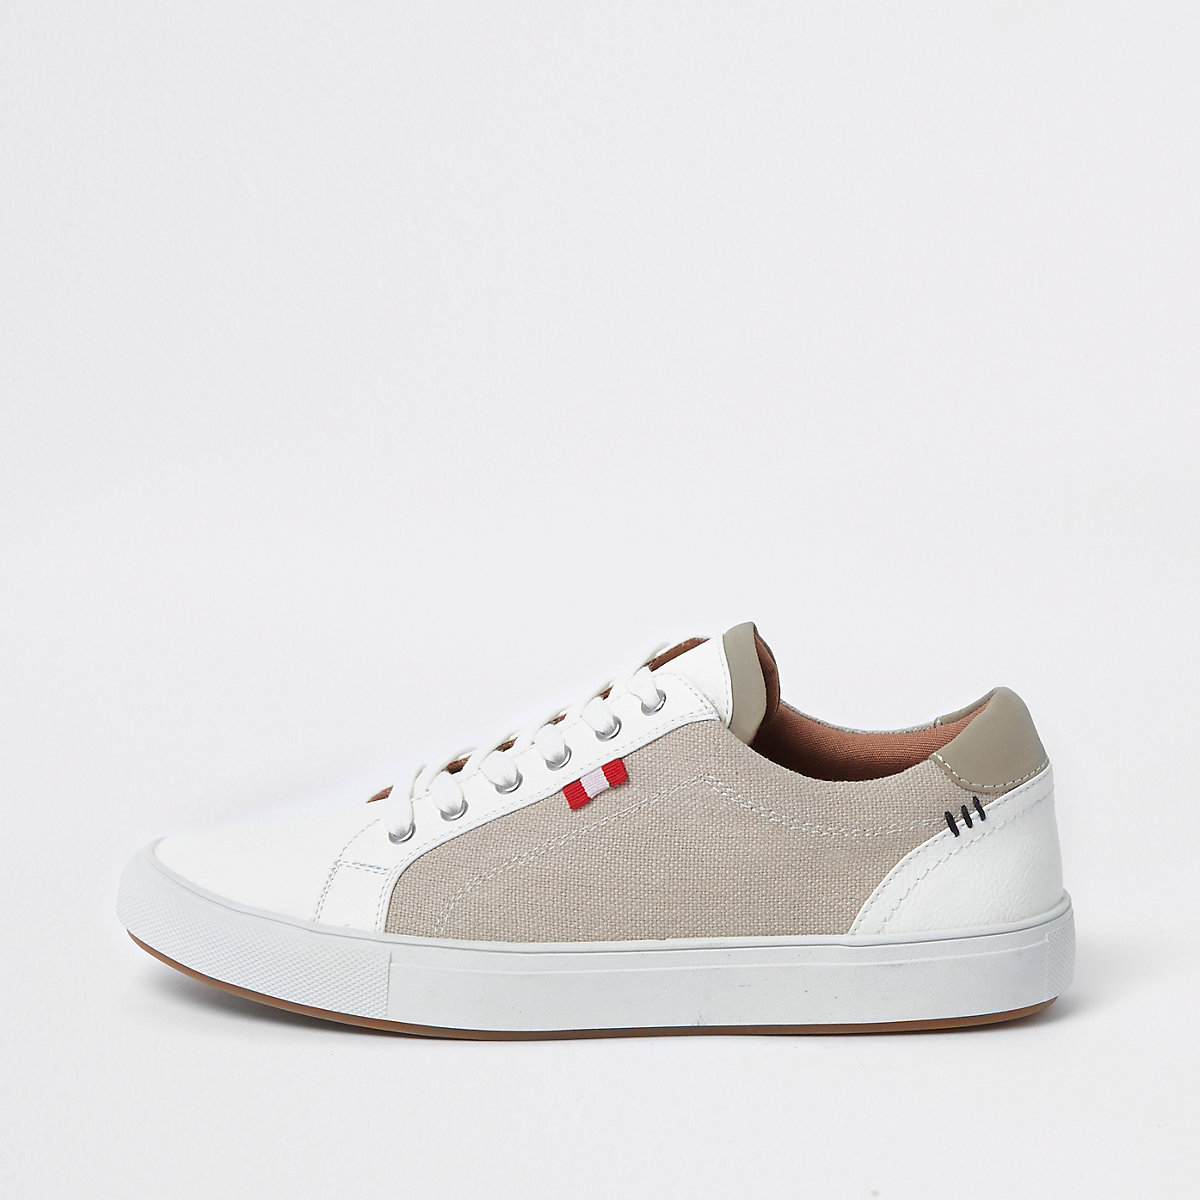 Cream canvas side lace-up sneakers